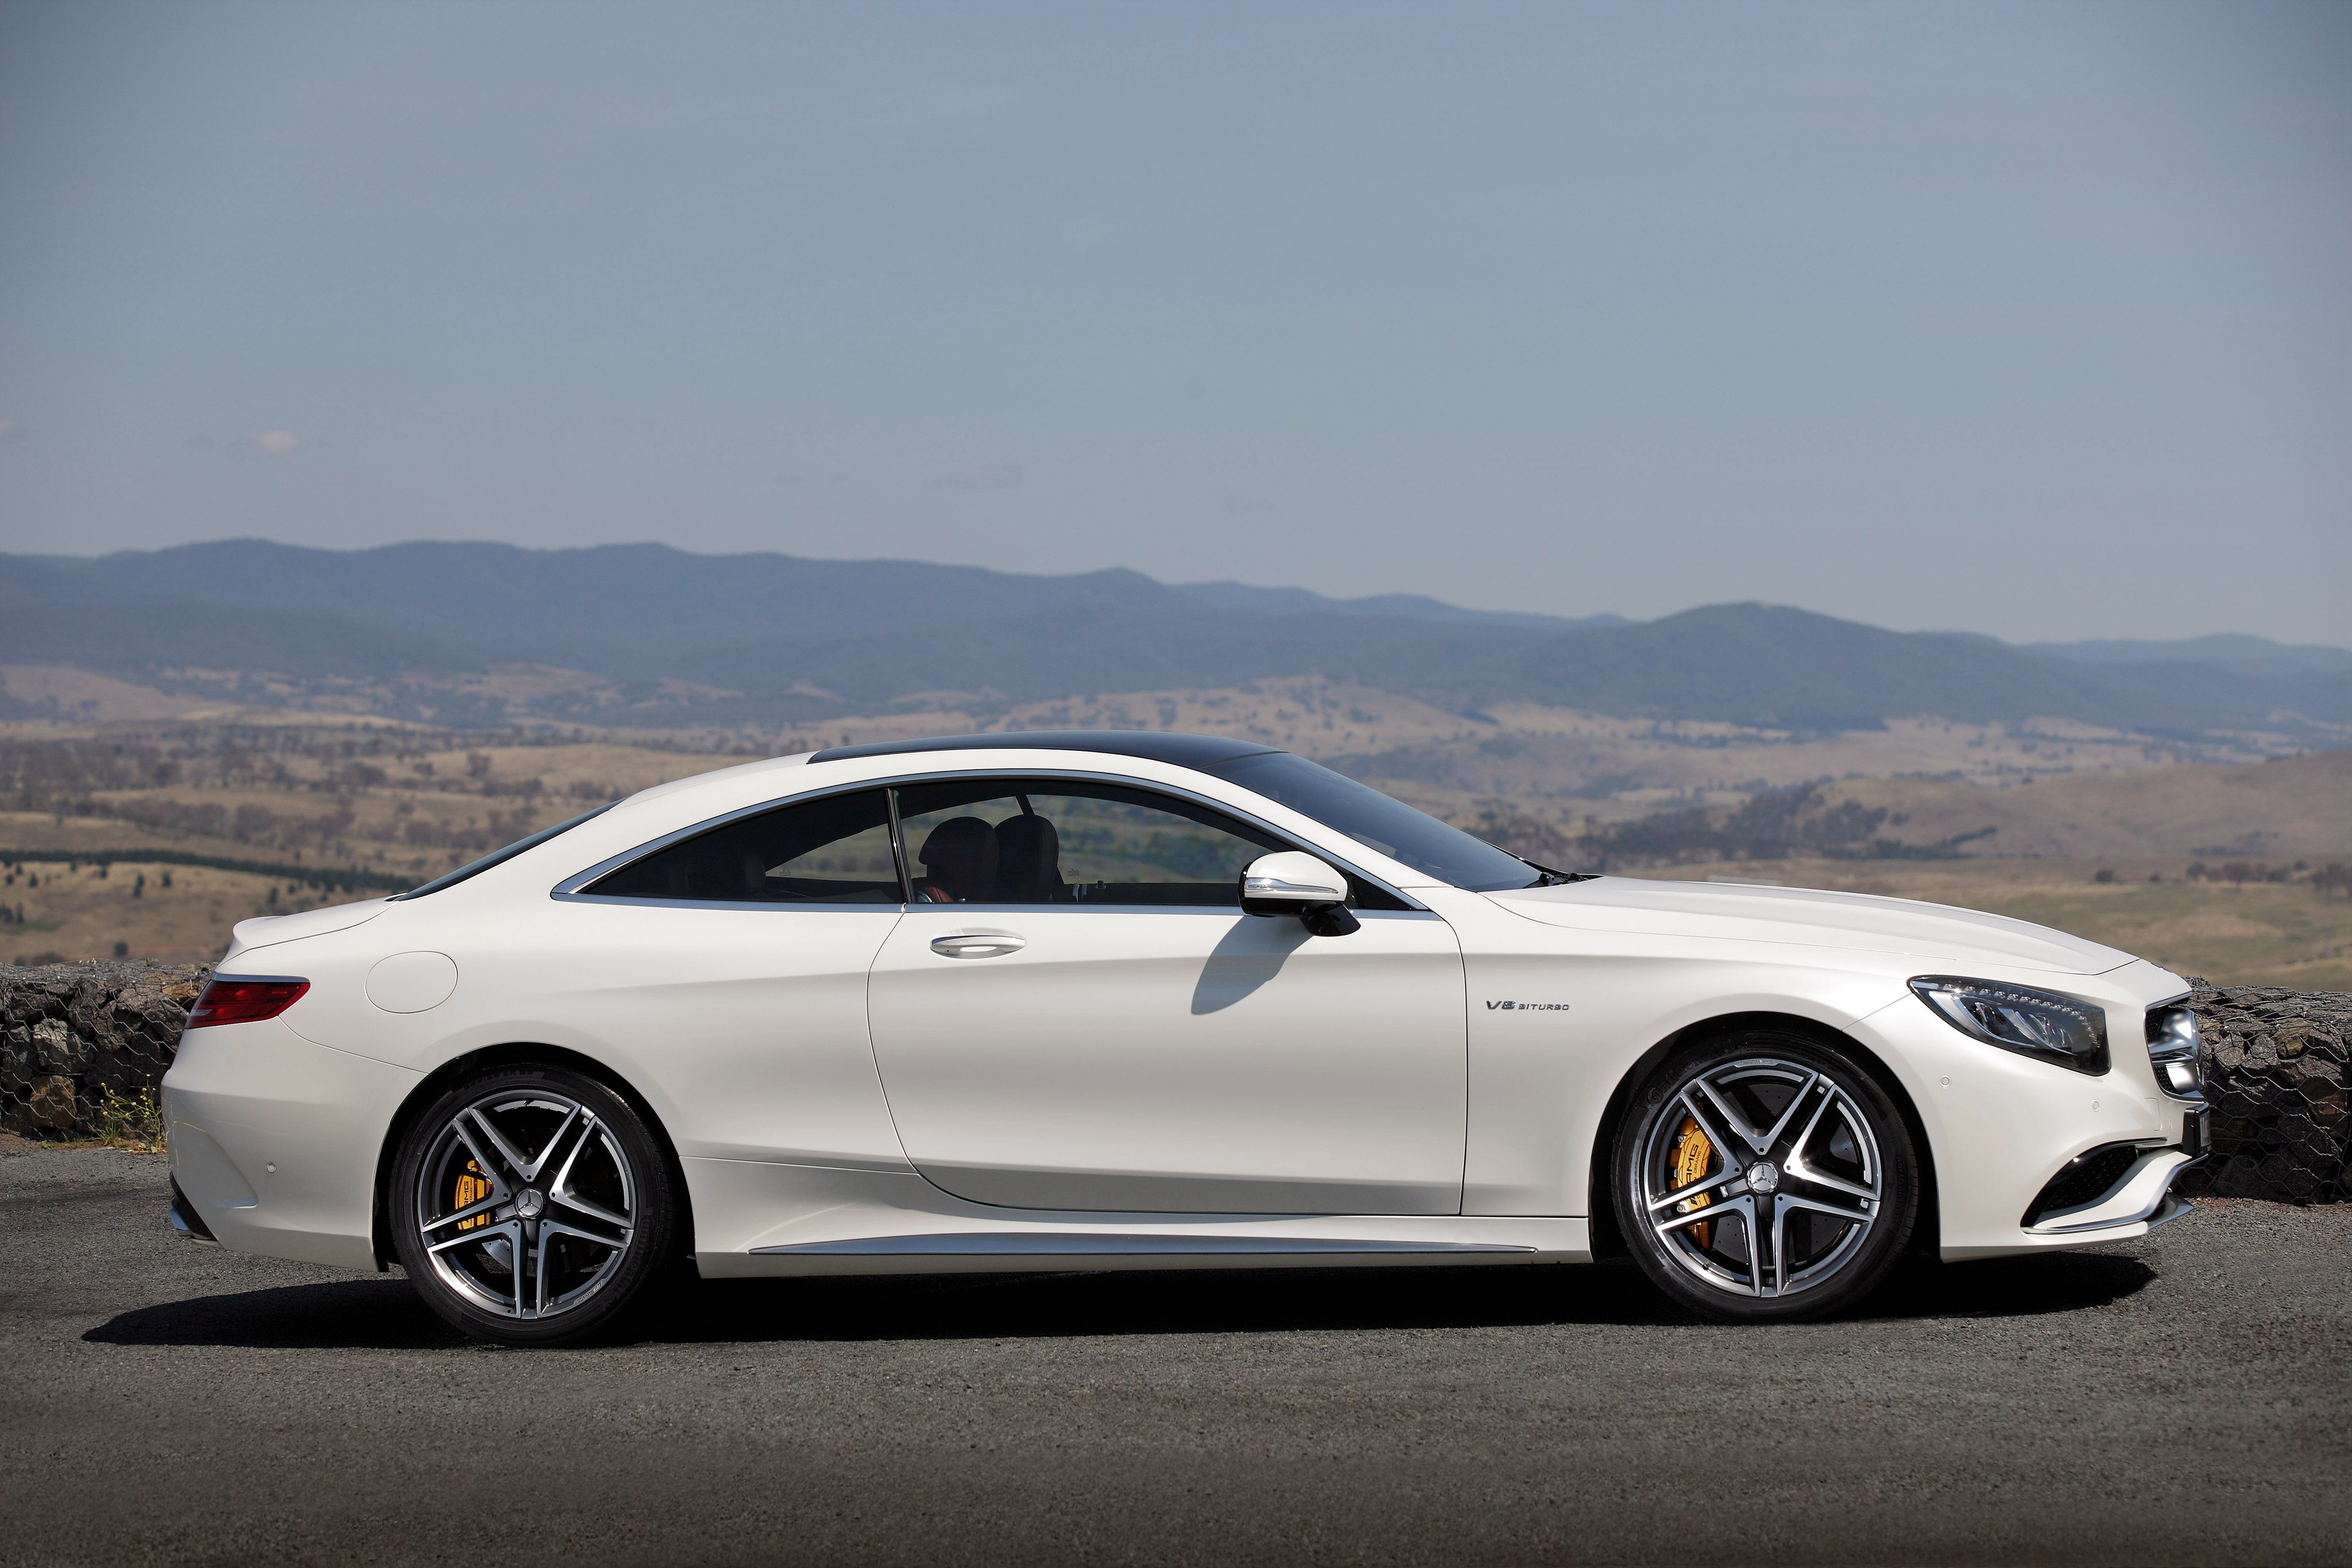 2015 mercedes benz s63 amg coupe au spec c217 wallpaper for 2015 mercedes benz s63